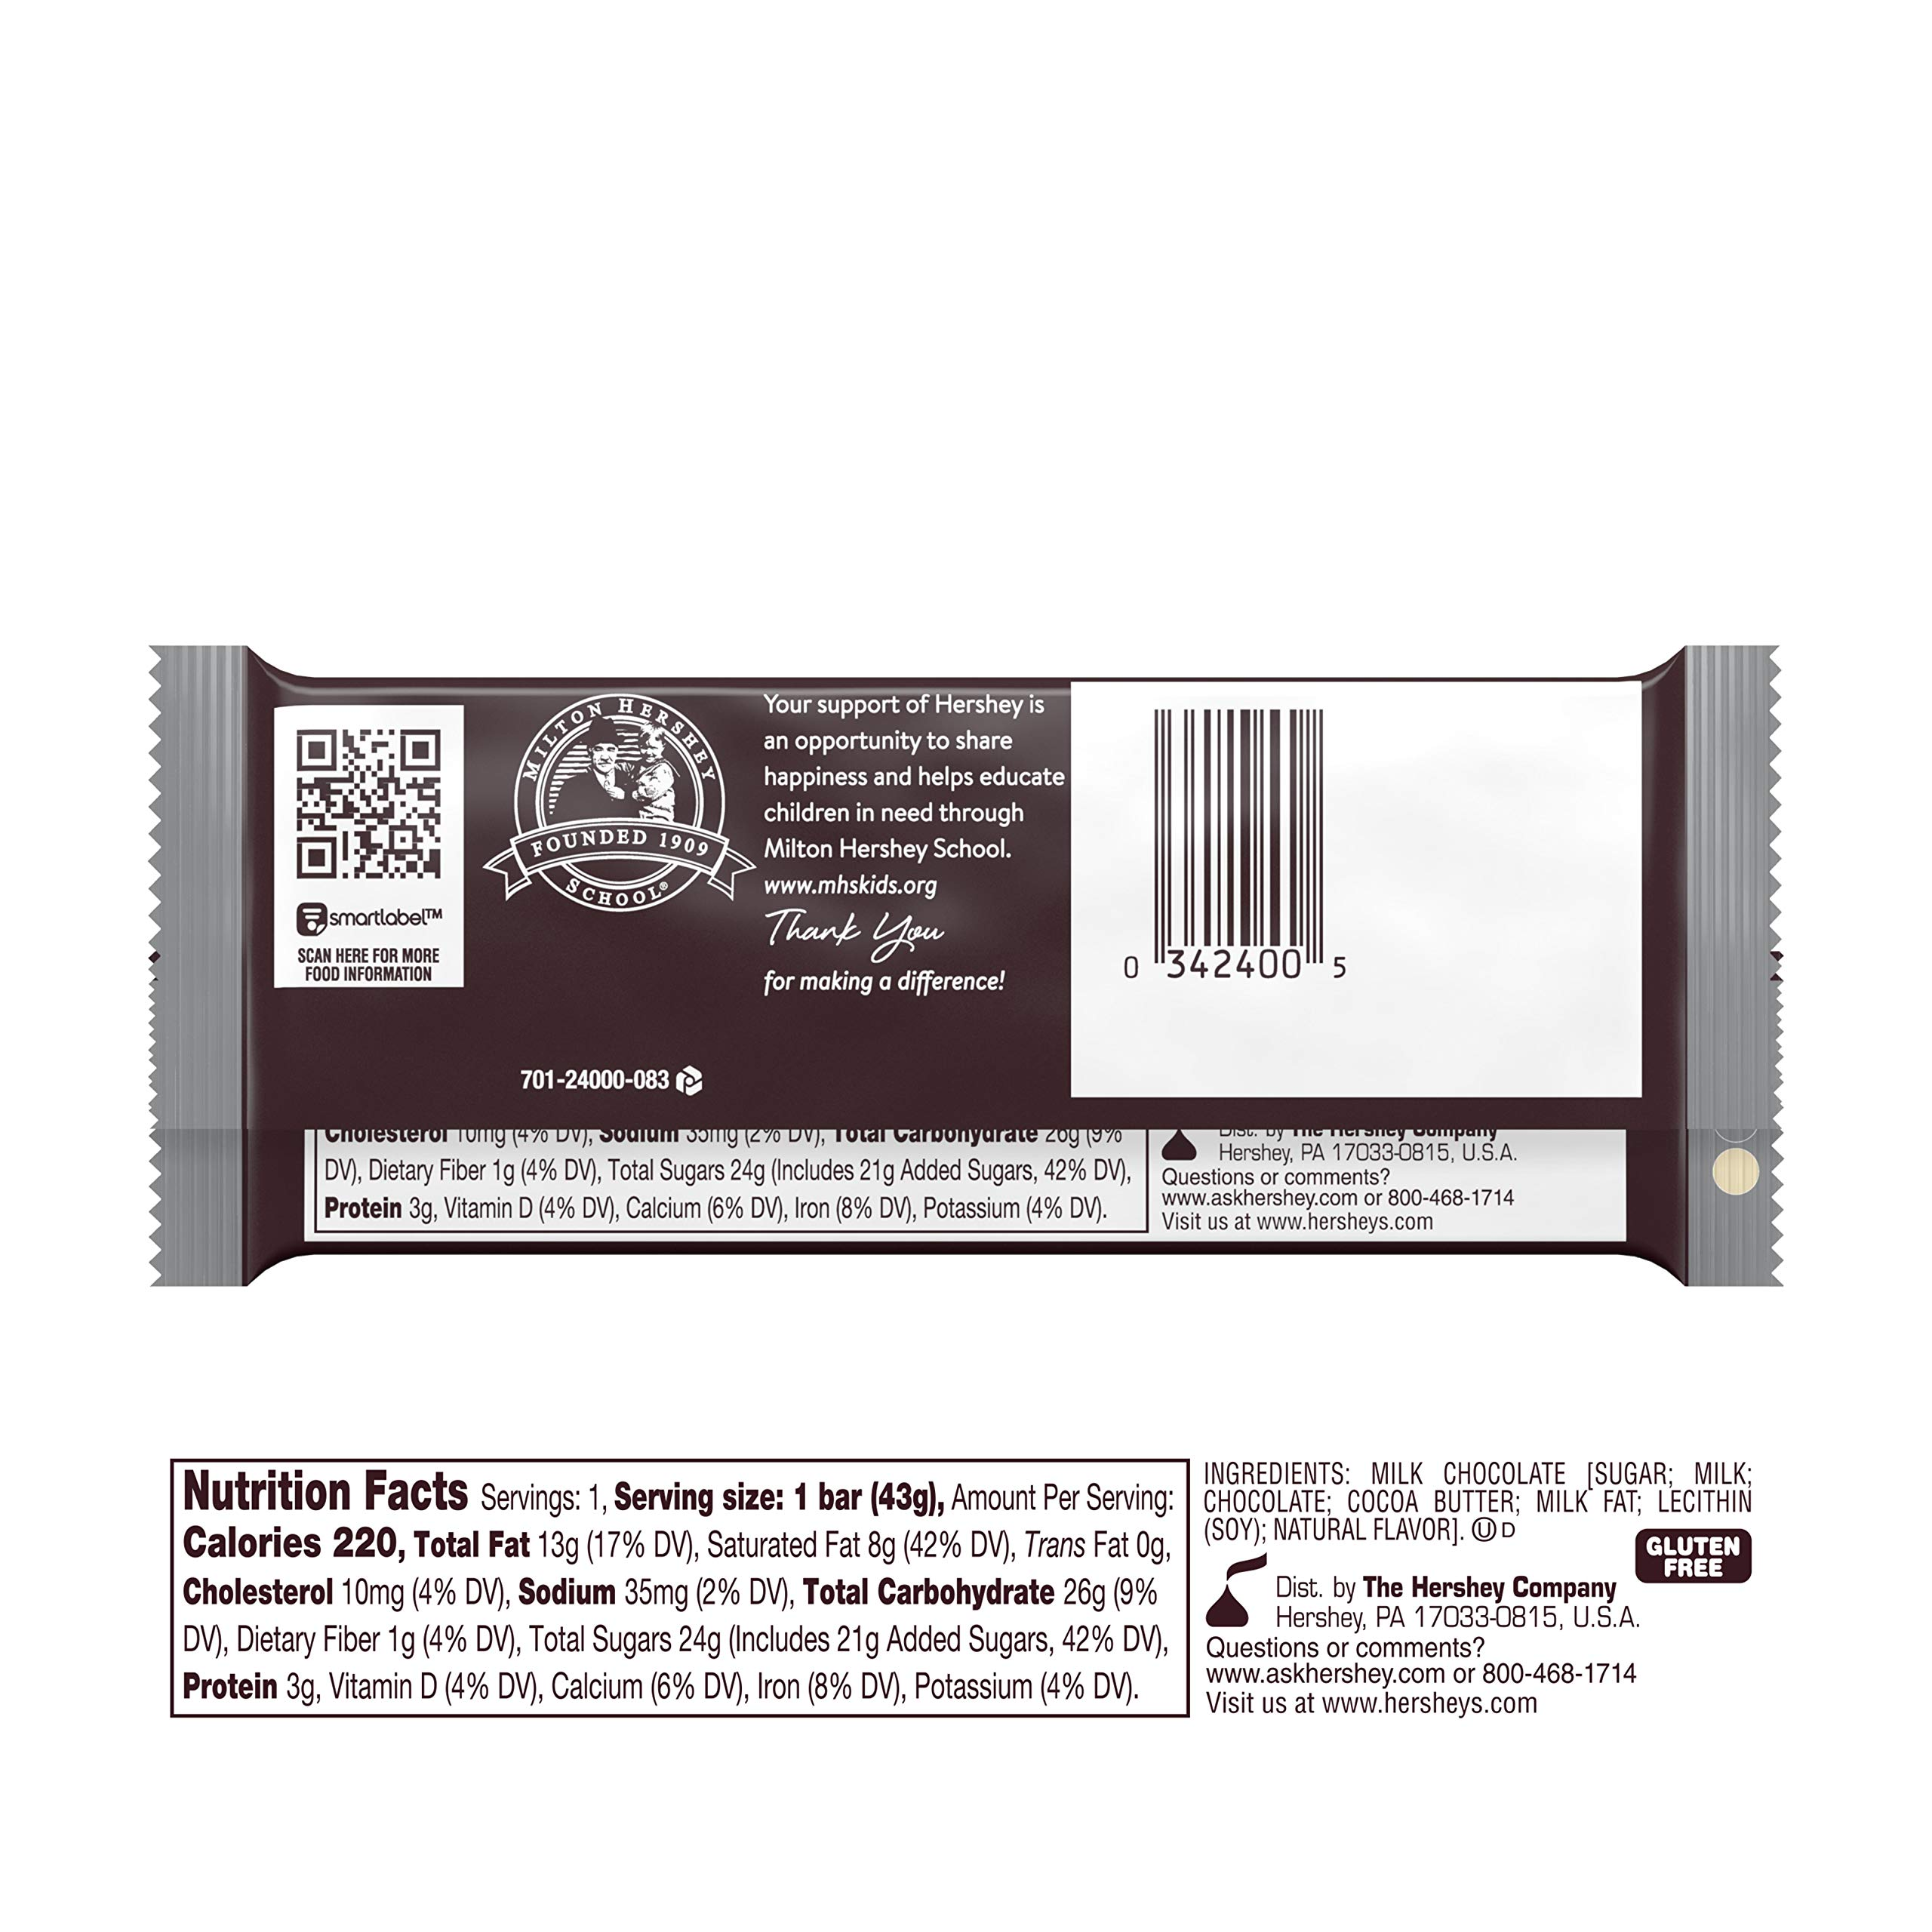 HERSHEY'S Milk Chocolate Candy Bars, 1.55-oz. Bars, 36 Count